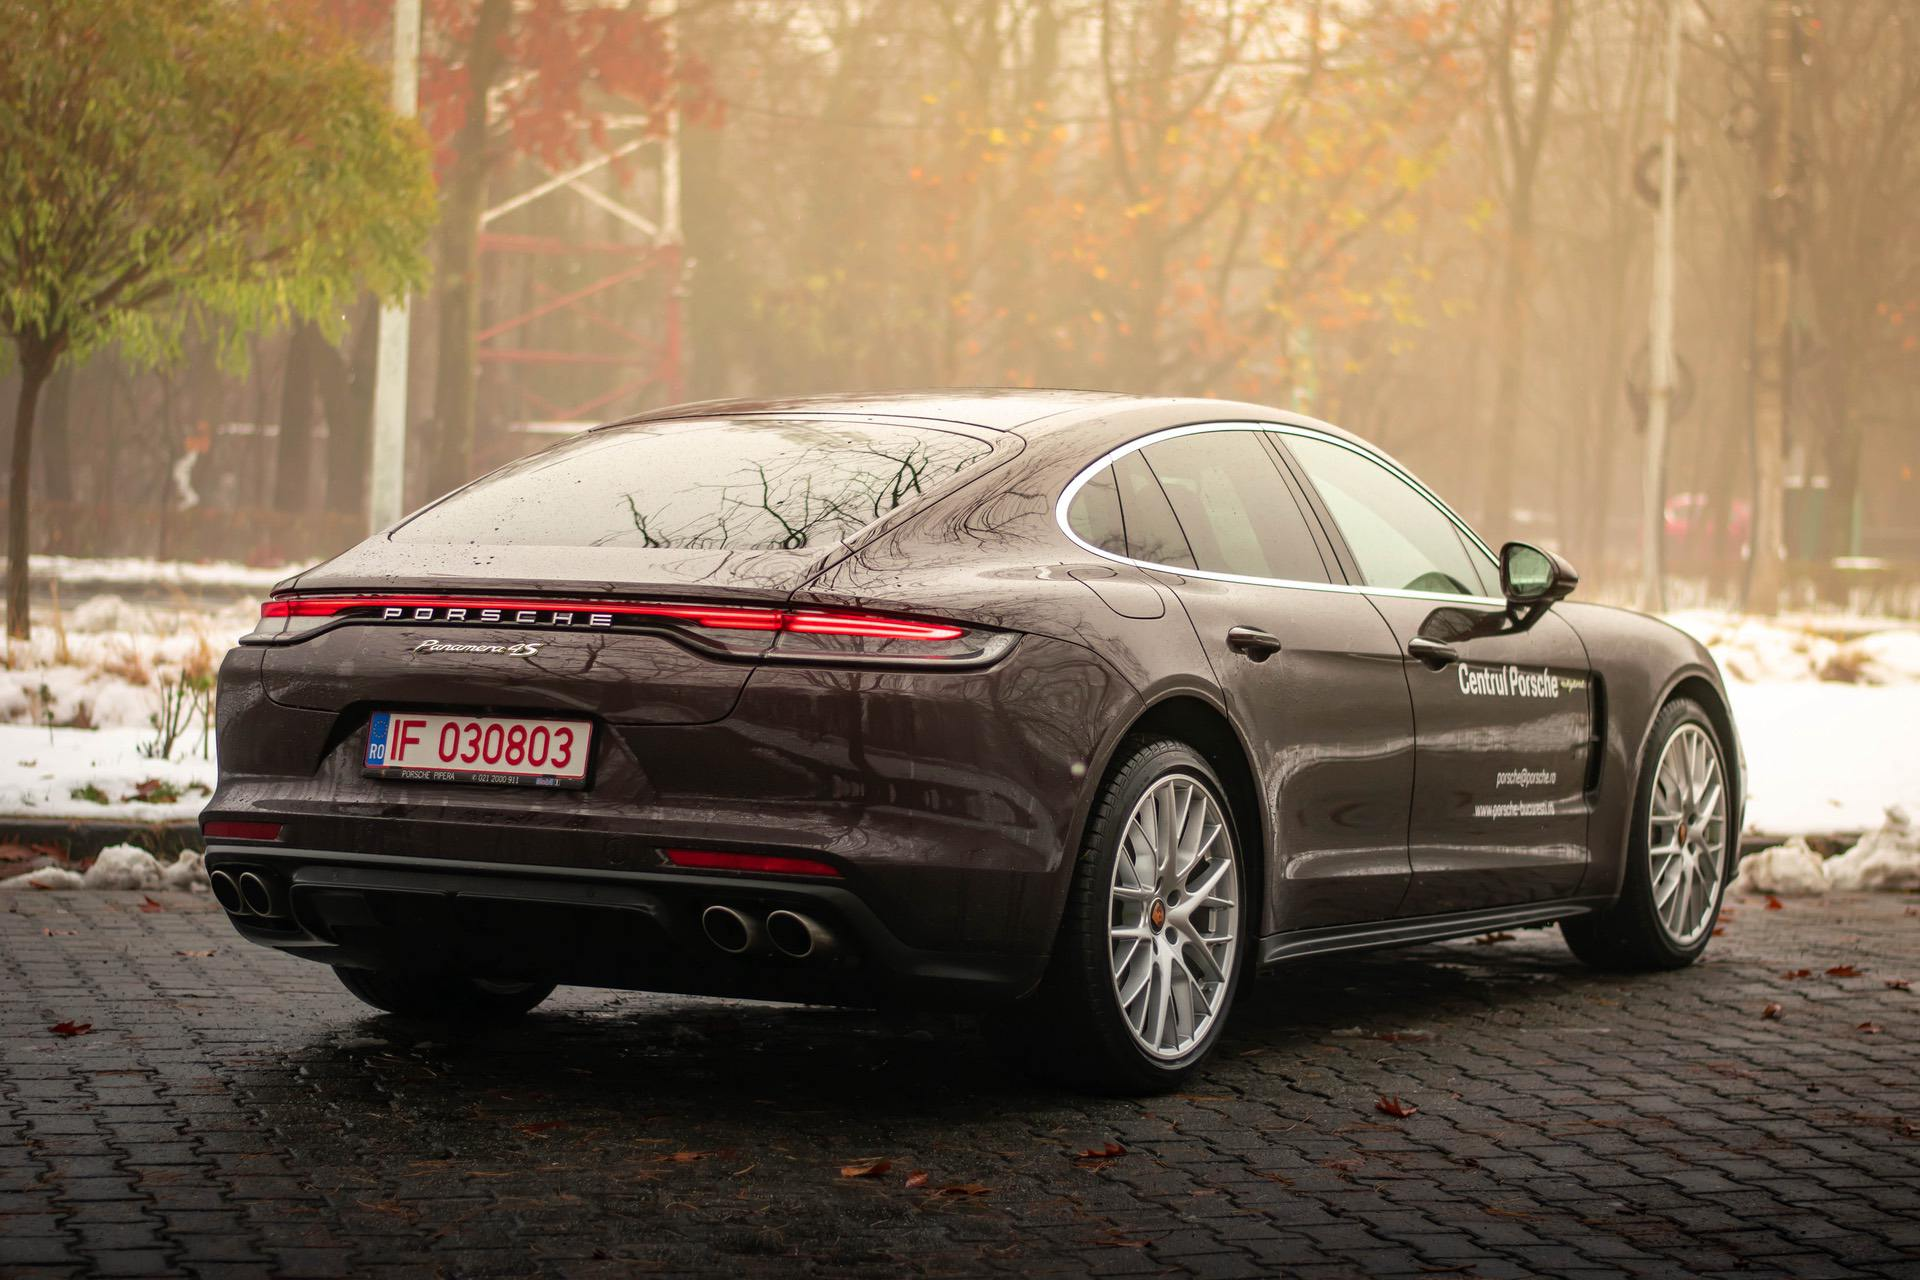 TEST DRIVE: 2021 Porsche Panamera 4S E-Hybrid – The World Is Changing